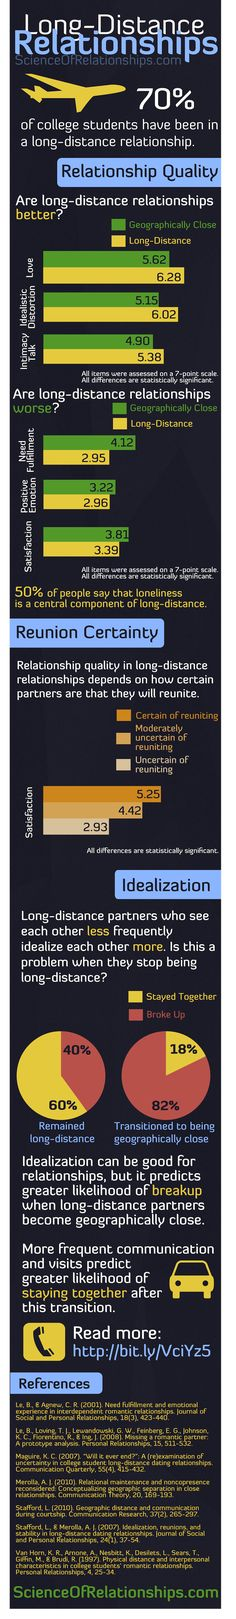 Long-Distance Relationships: TheInfographic